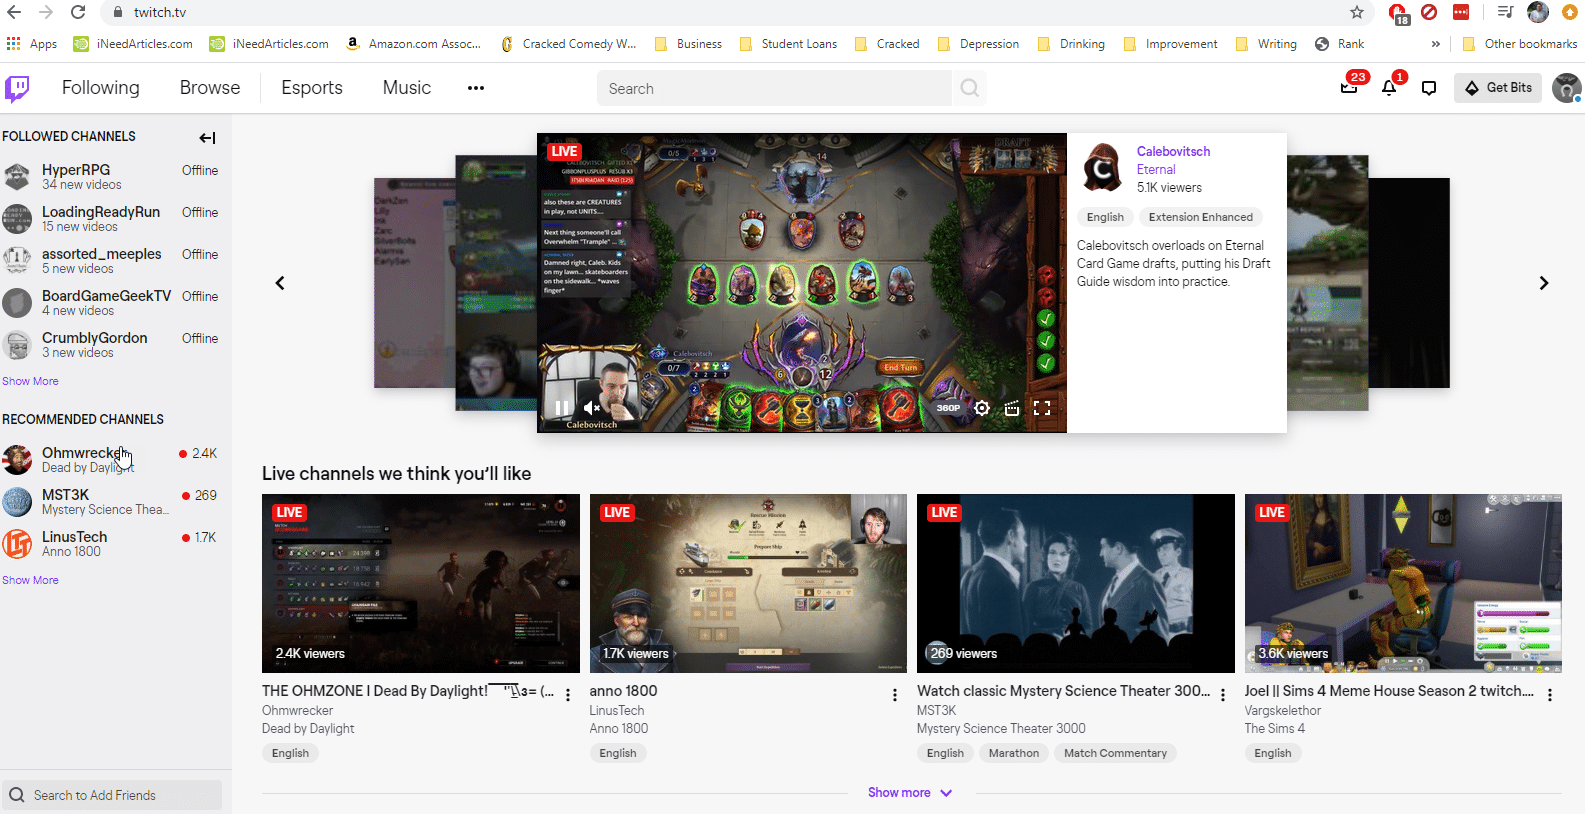 Twitch.TV Home Page